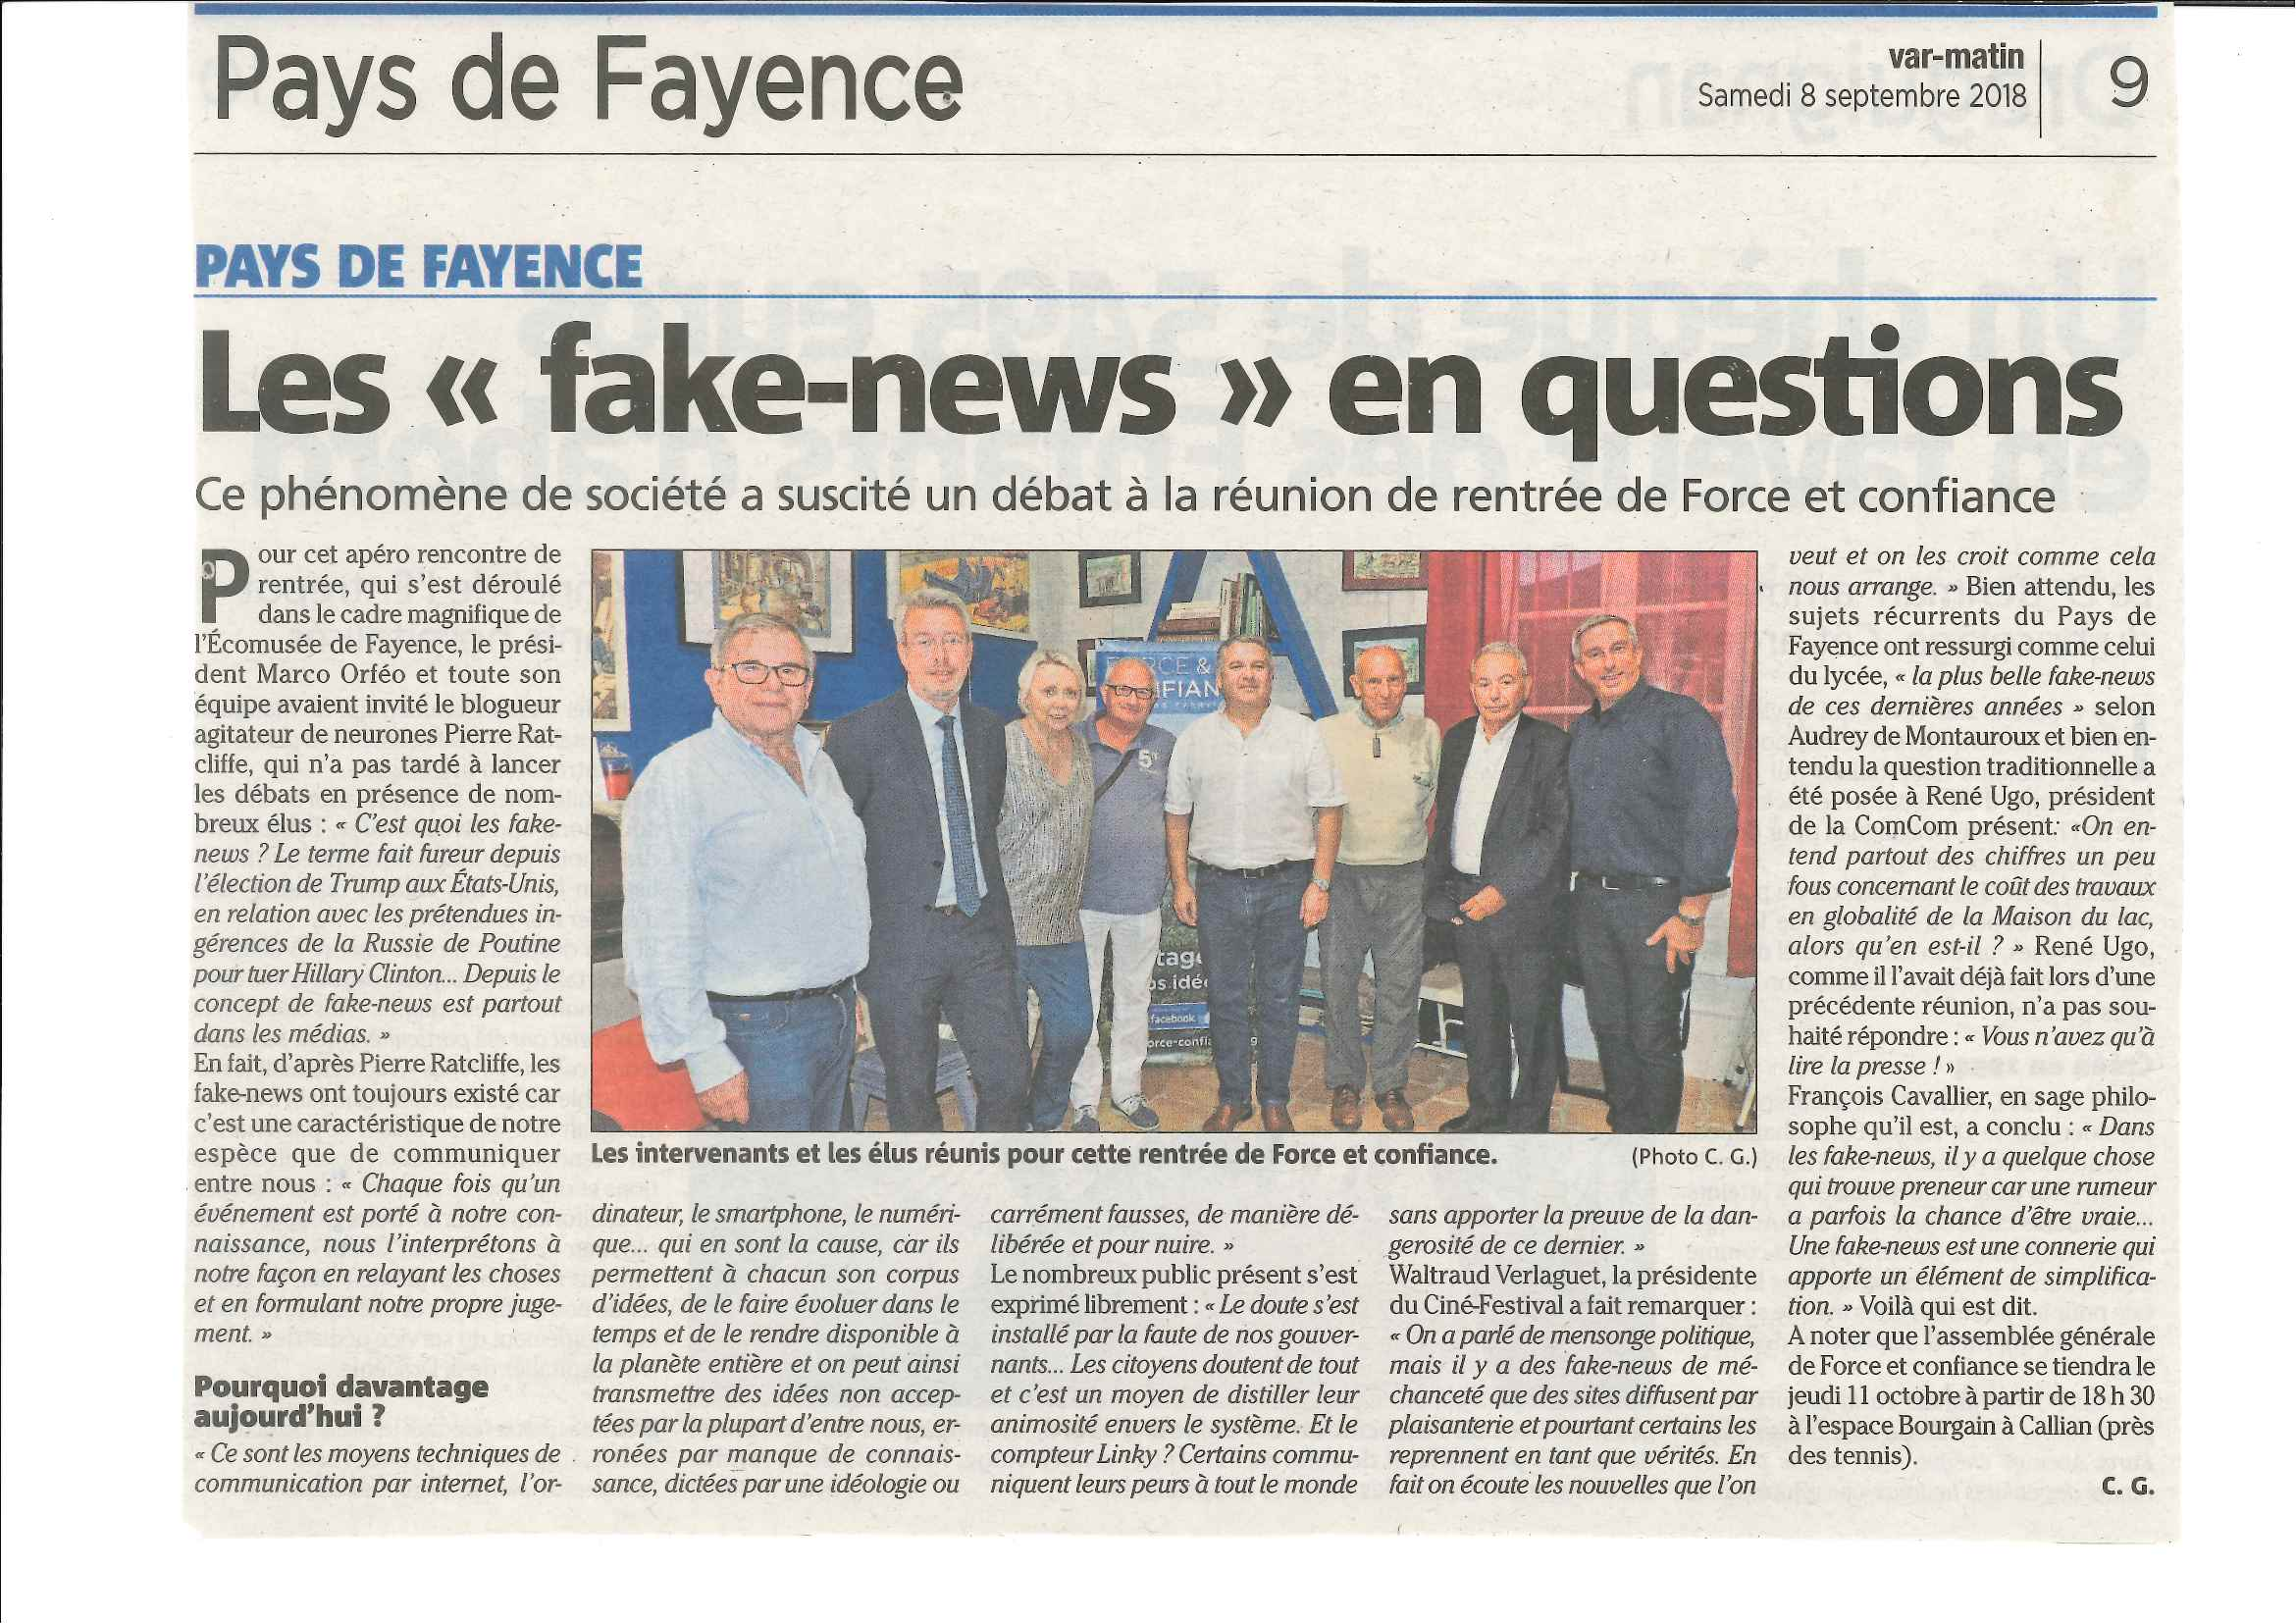 Les Fake-Newsen questions